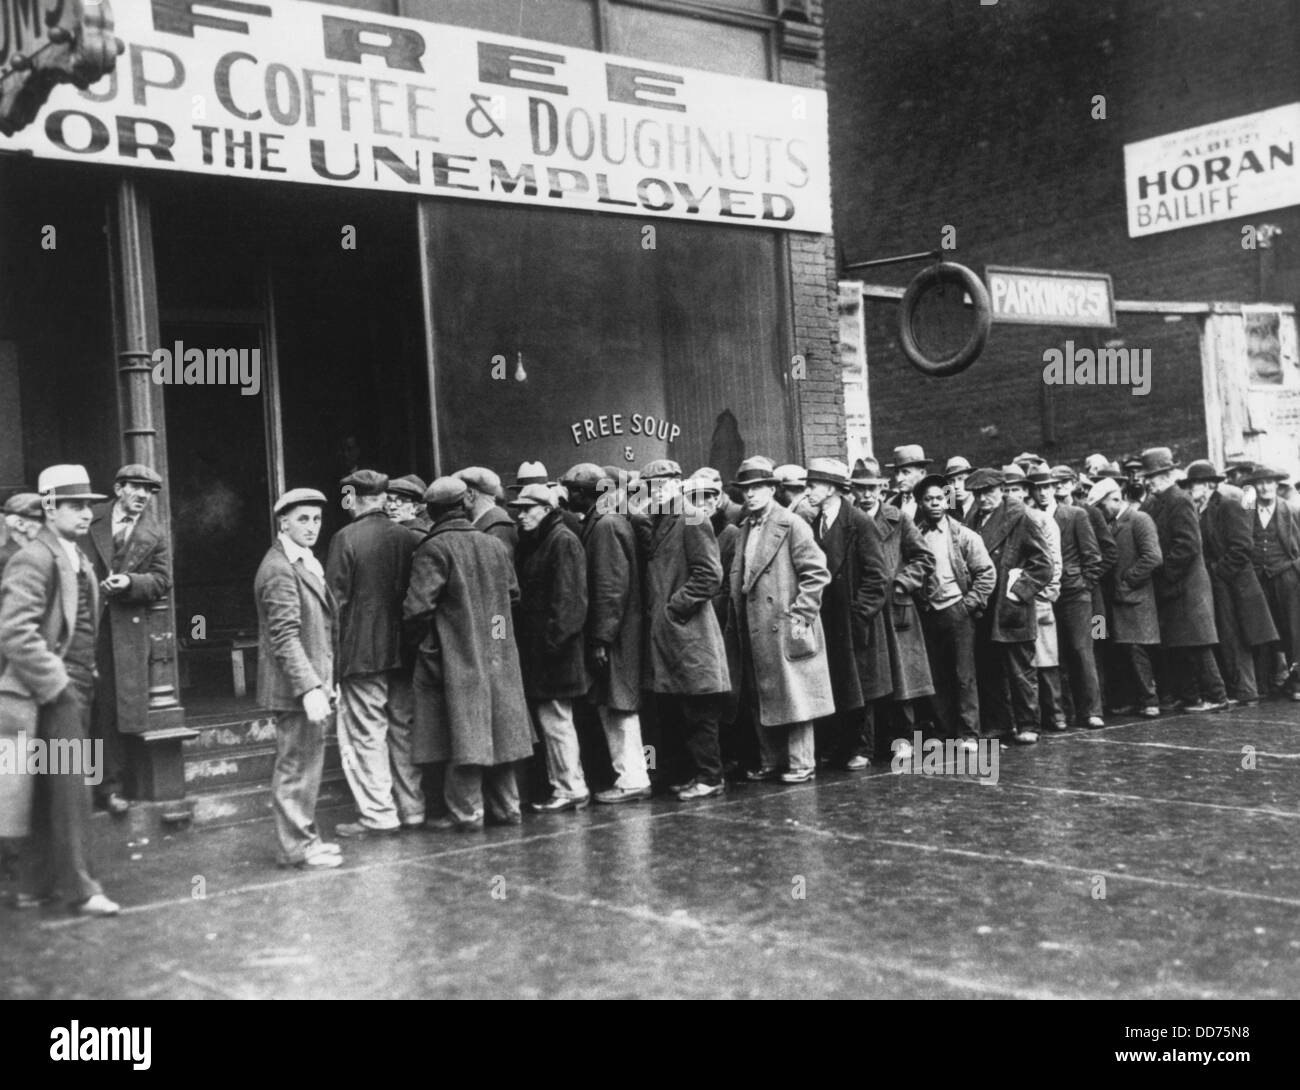 Jobless men in line at a depression era Chicago Soup Kitchen, Feb. 1931. Opened by gangster Al Capone, the storefront - Stock Image